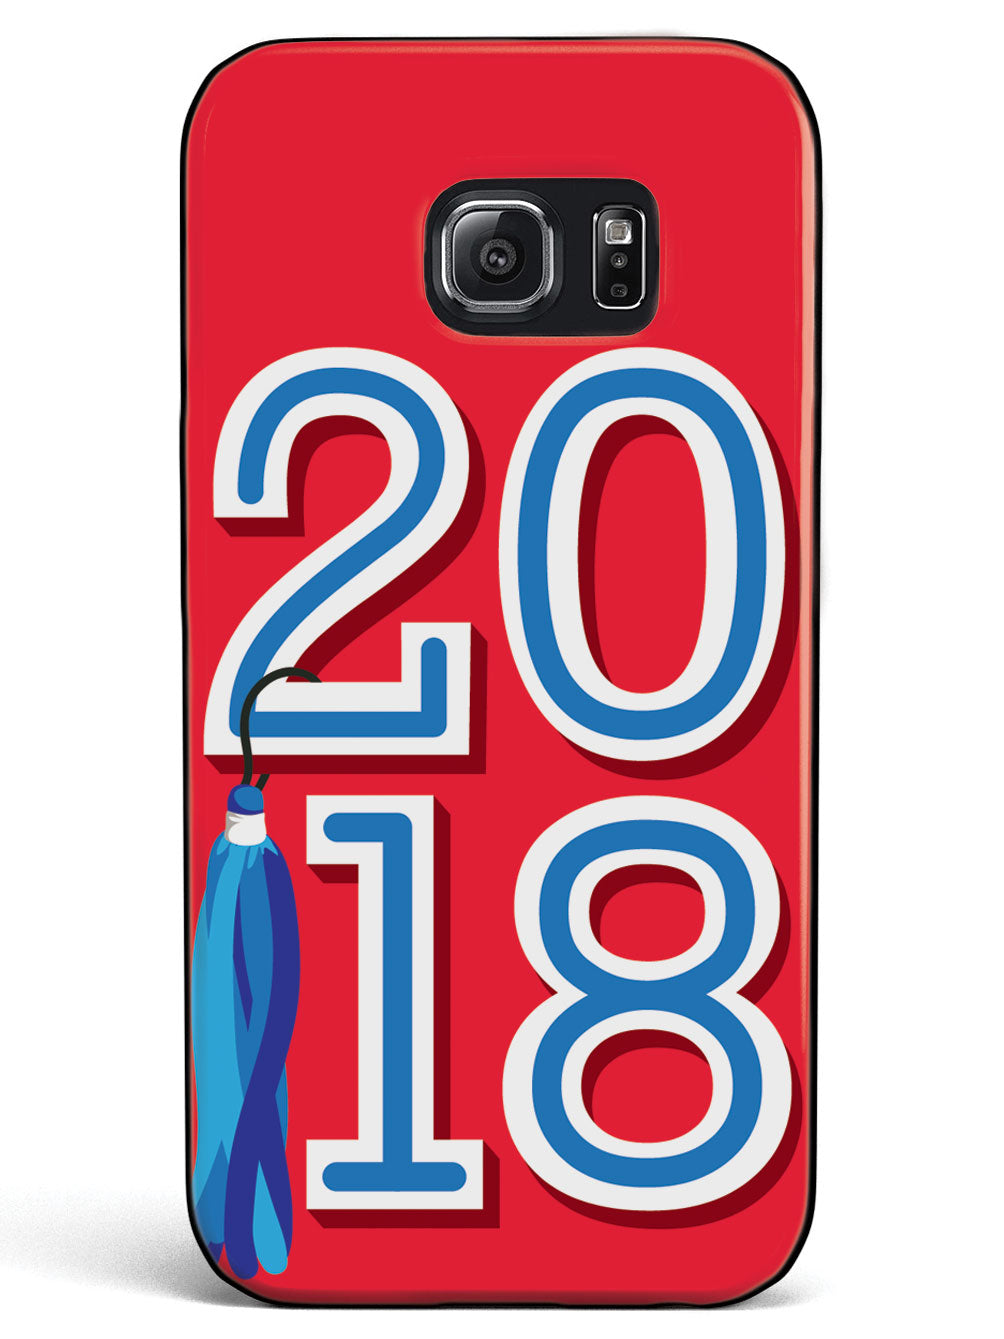 Class of 2018 - Red - Black Case